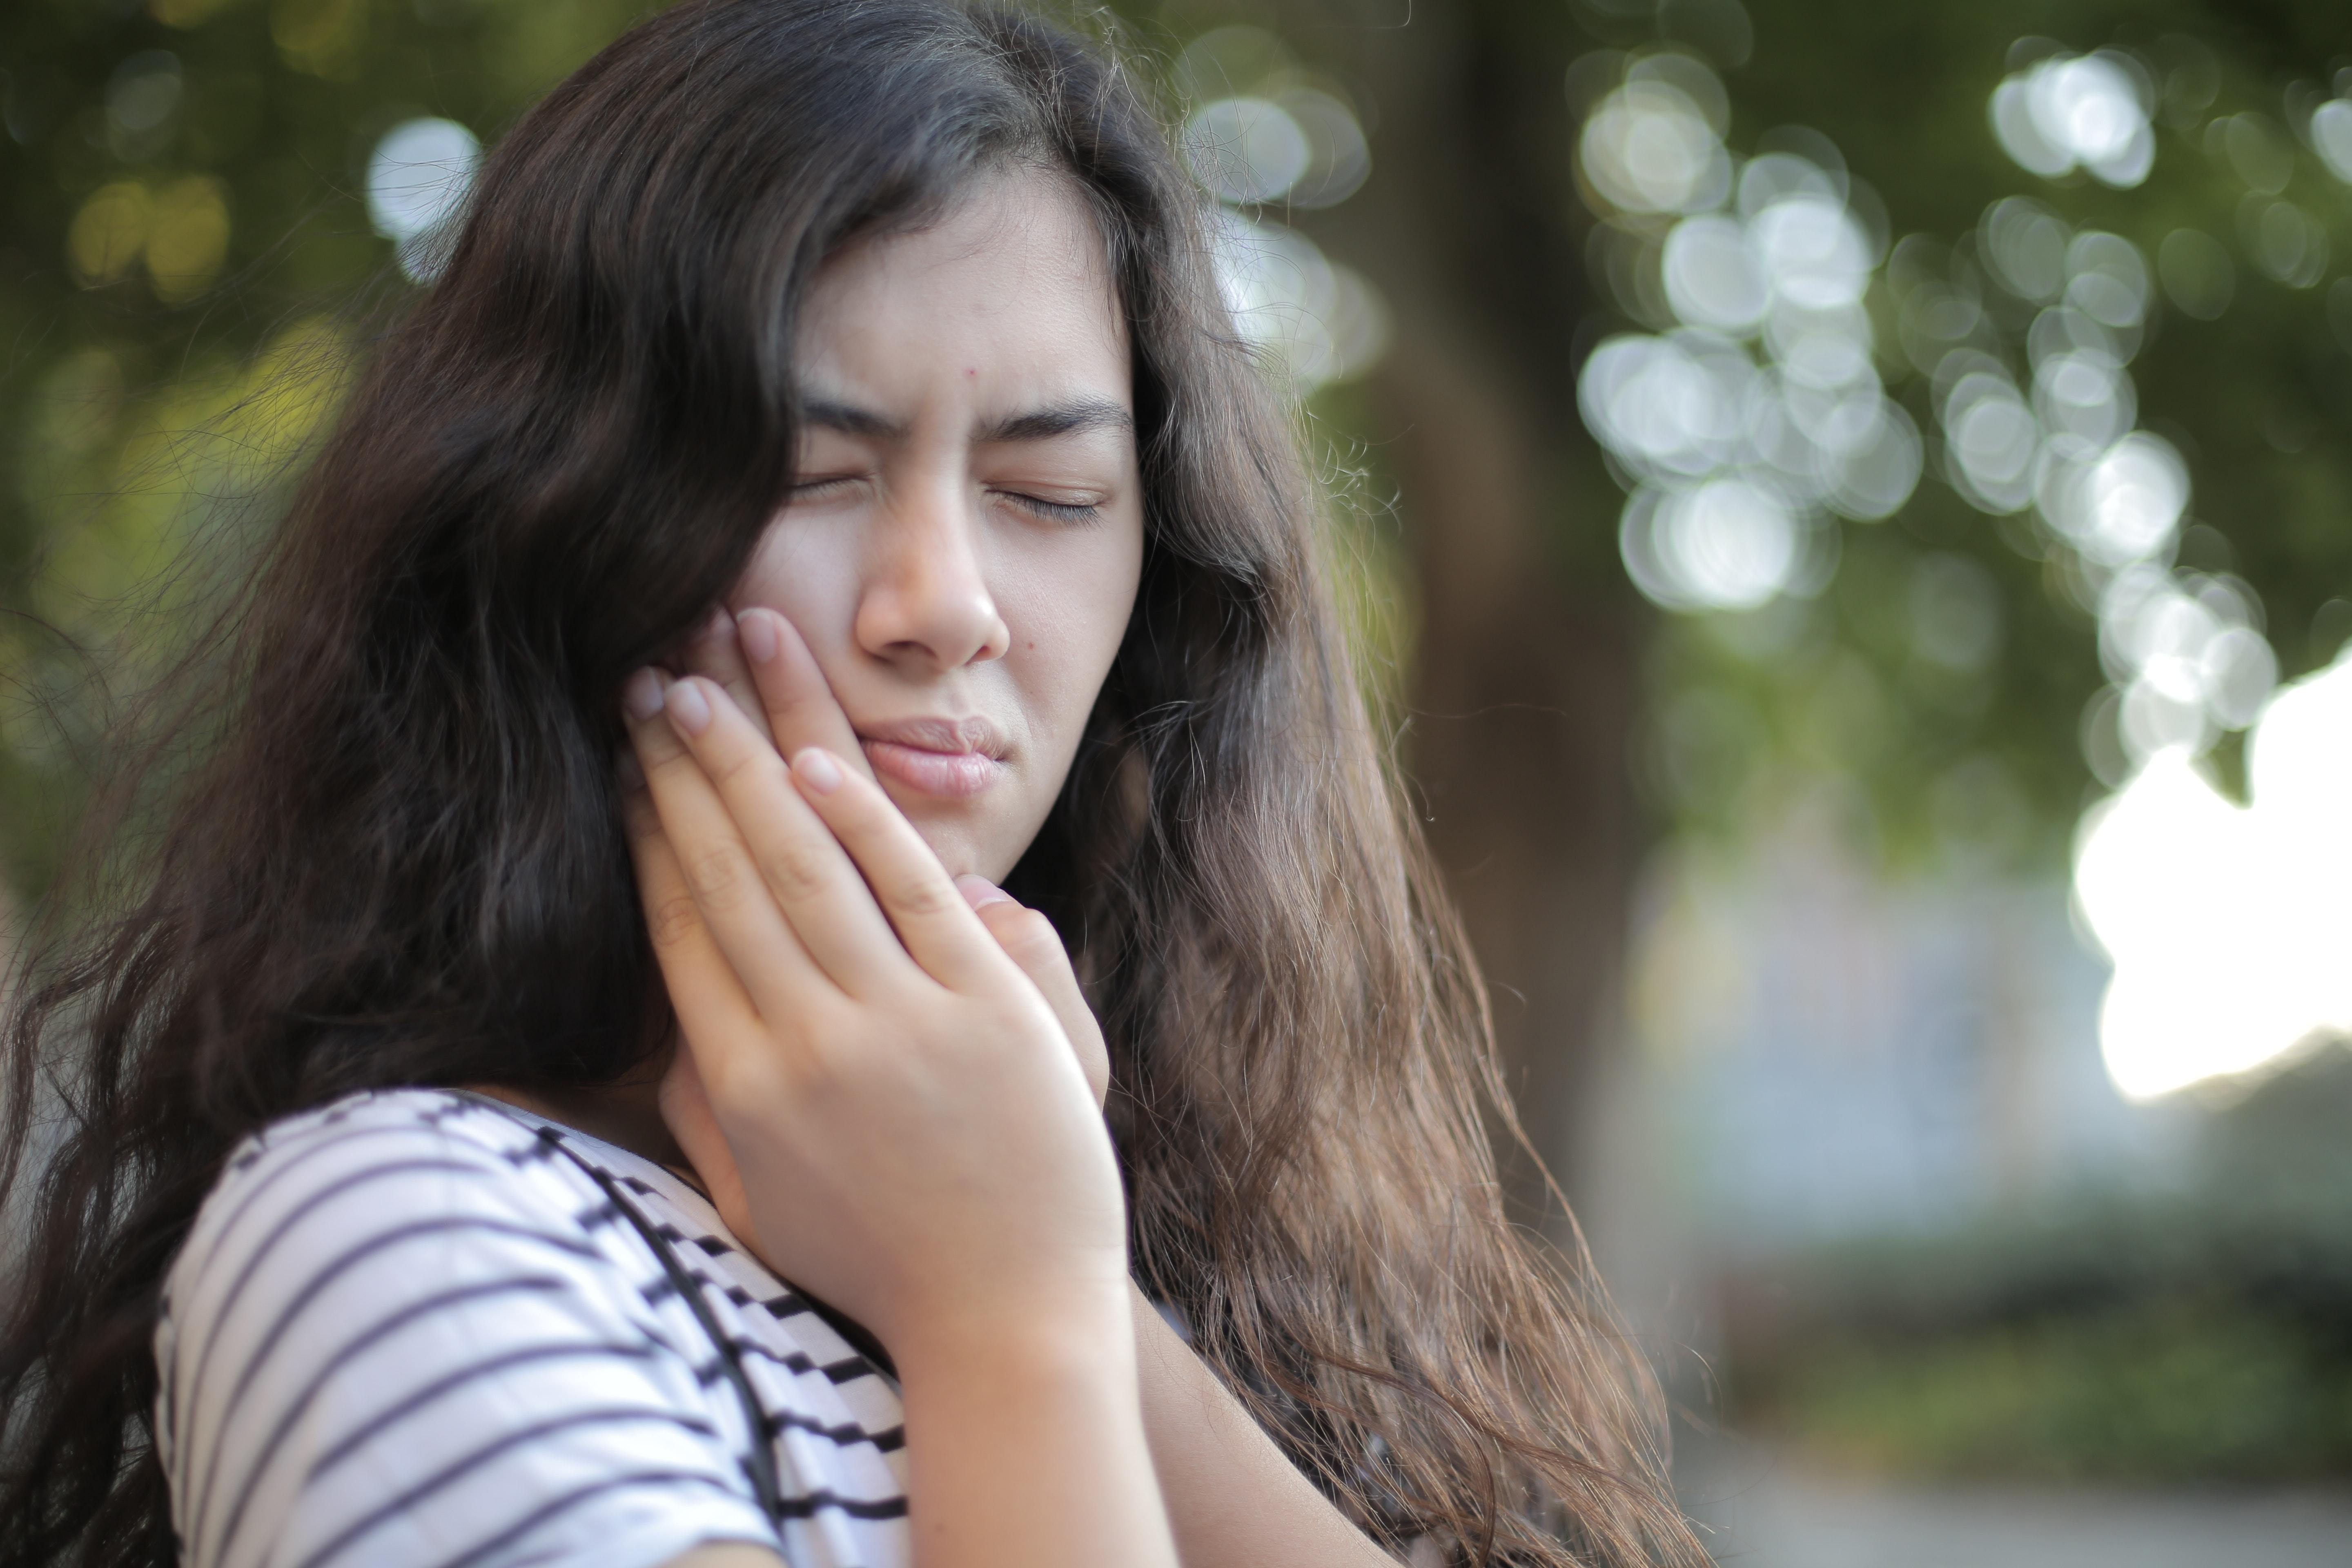 TMJ and jaw misalignment chiropractor